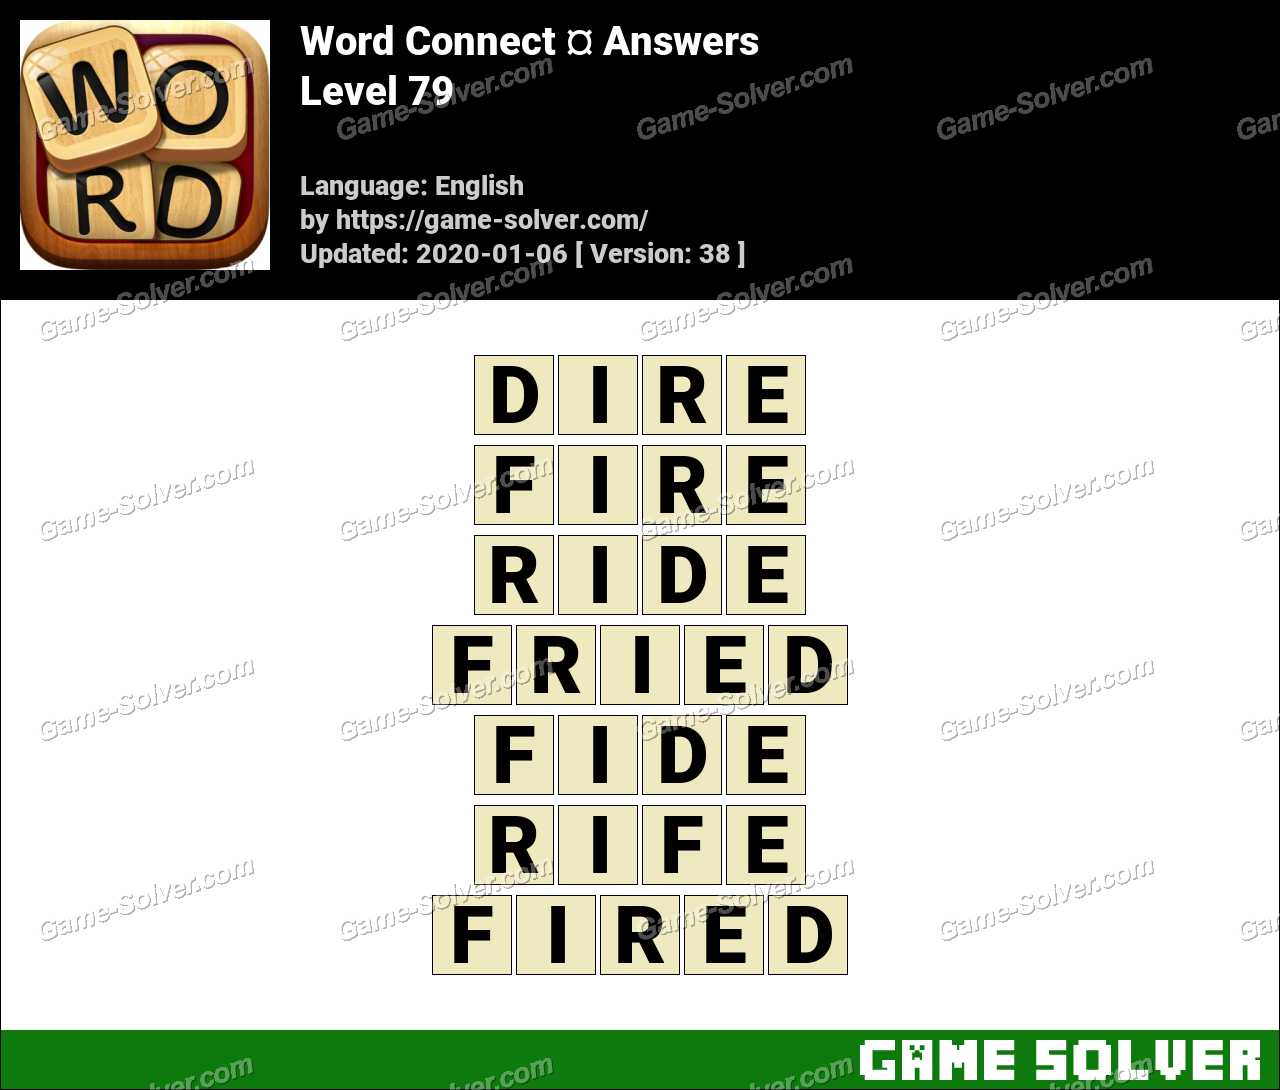 Word Connect Level 79 Answers